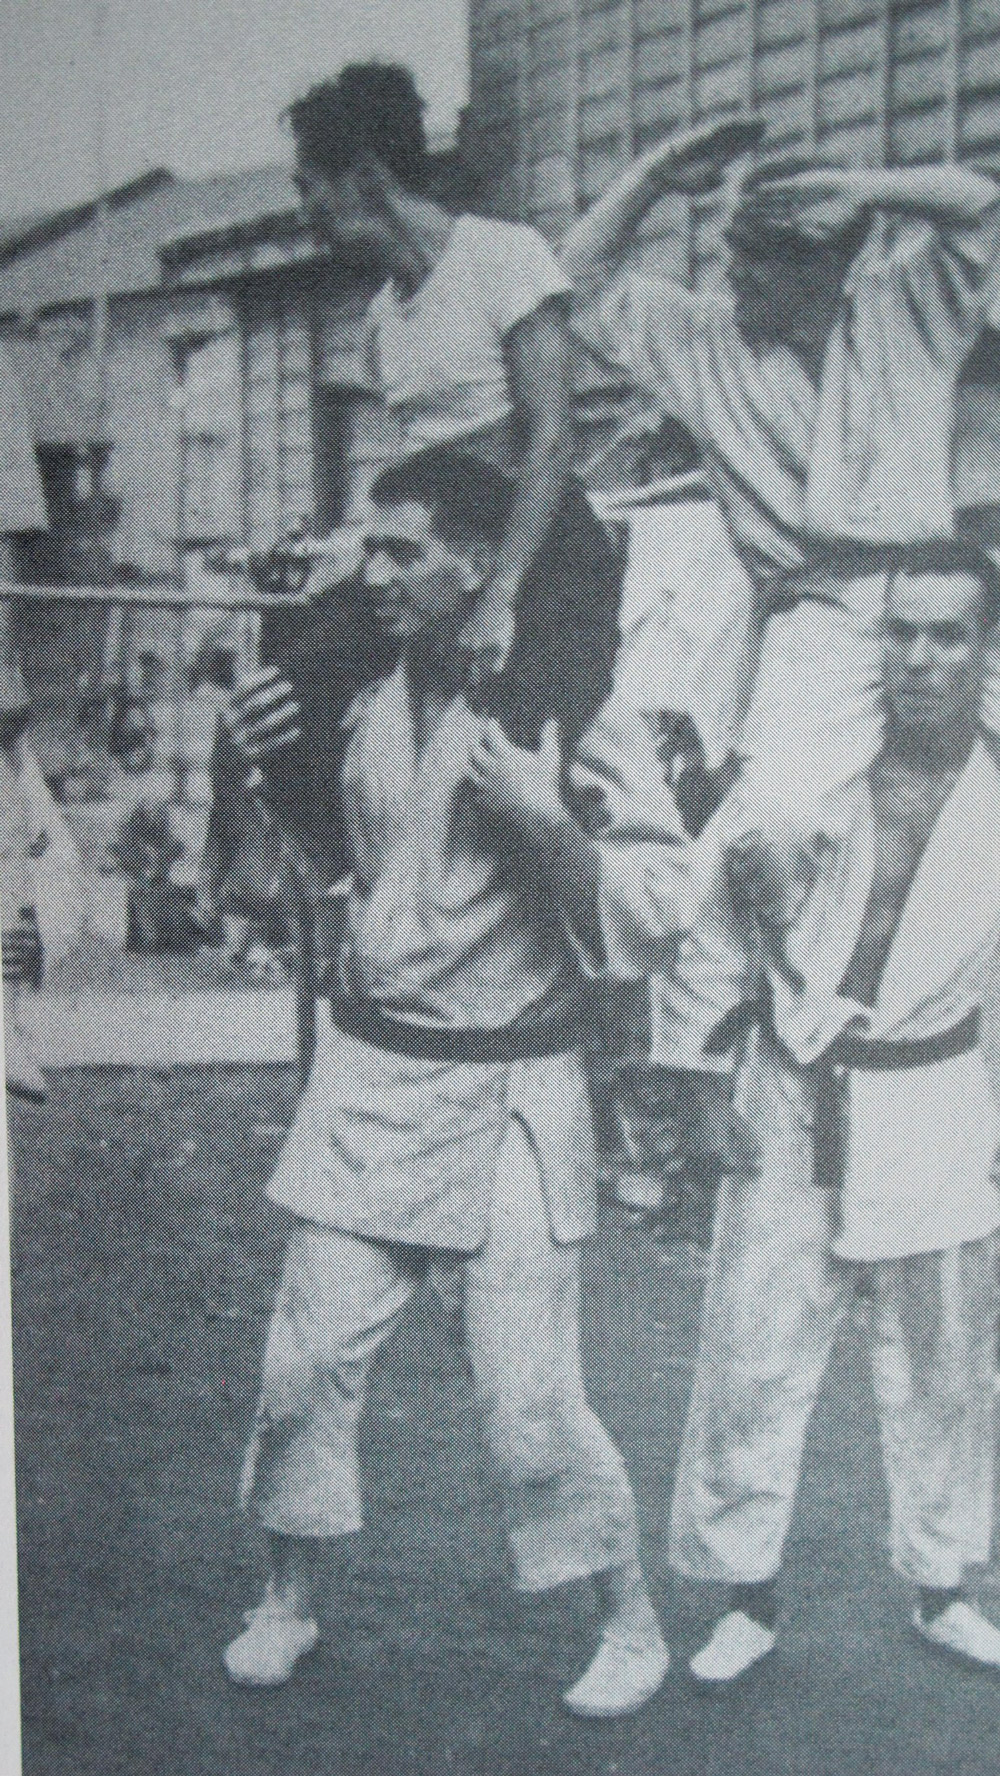 Master Suzuki is seated on Boehm's shoulders while in a group of some of Boehm's Navy buddies, who also trained with Suzuki.